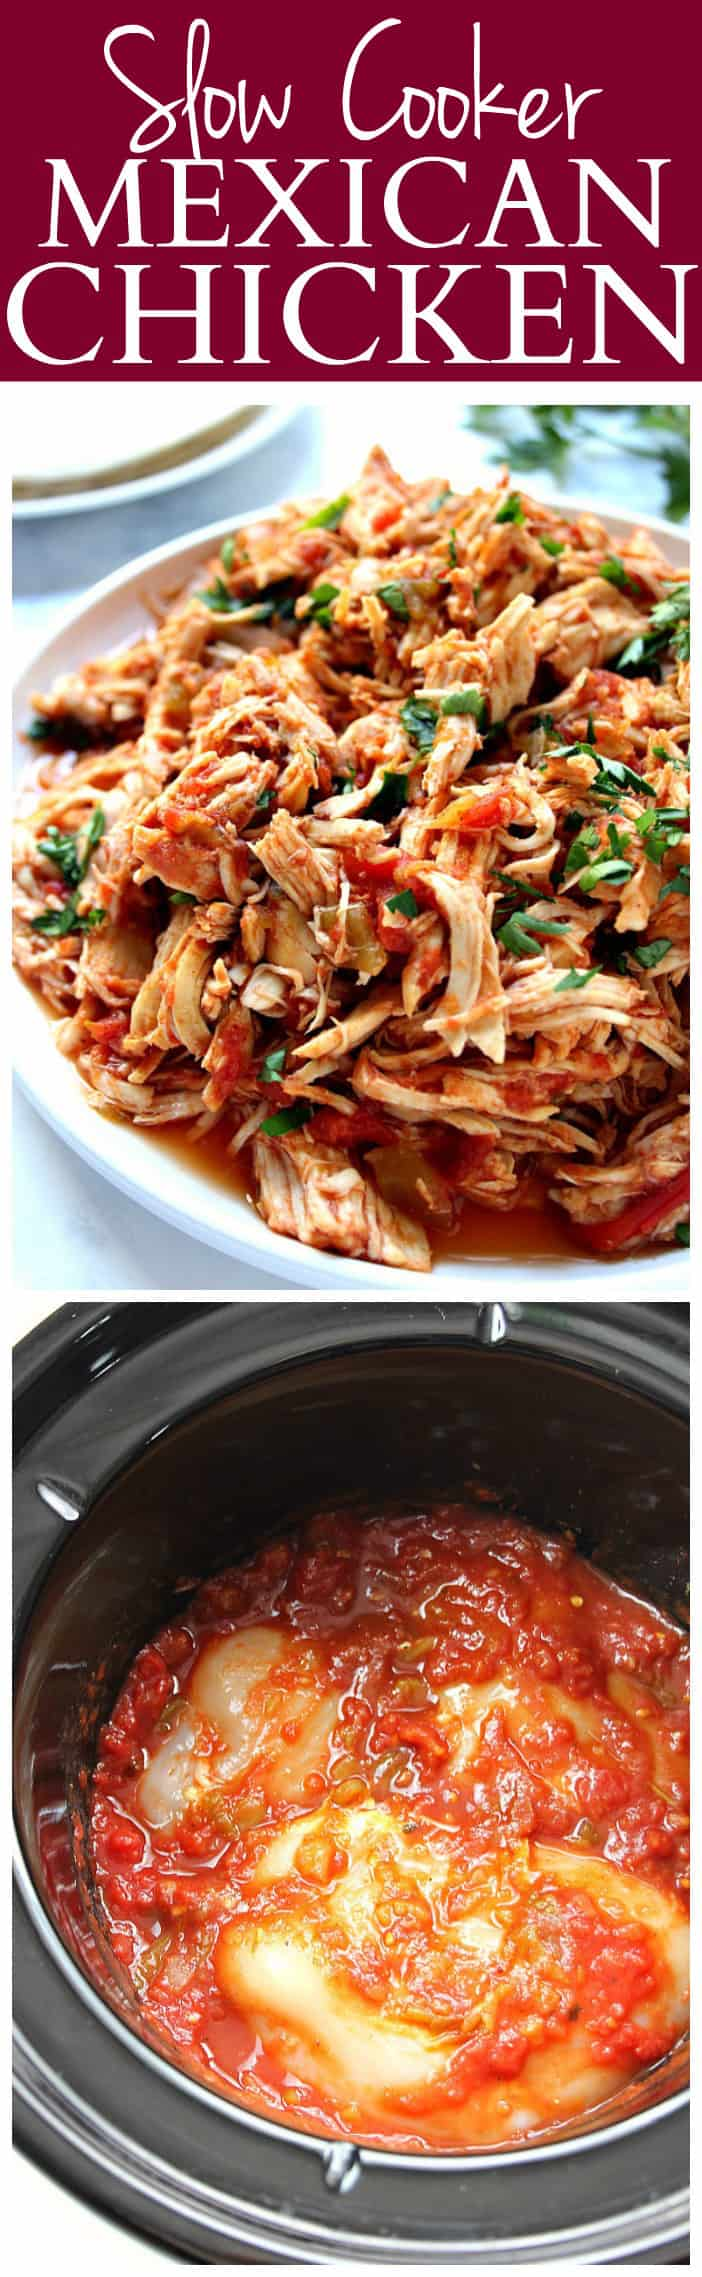 slow cooker mexican chicken recipe long1 Slow Cooker Mexican Chicken Recipe